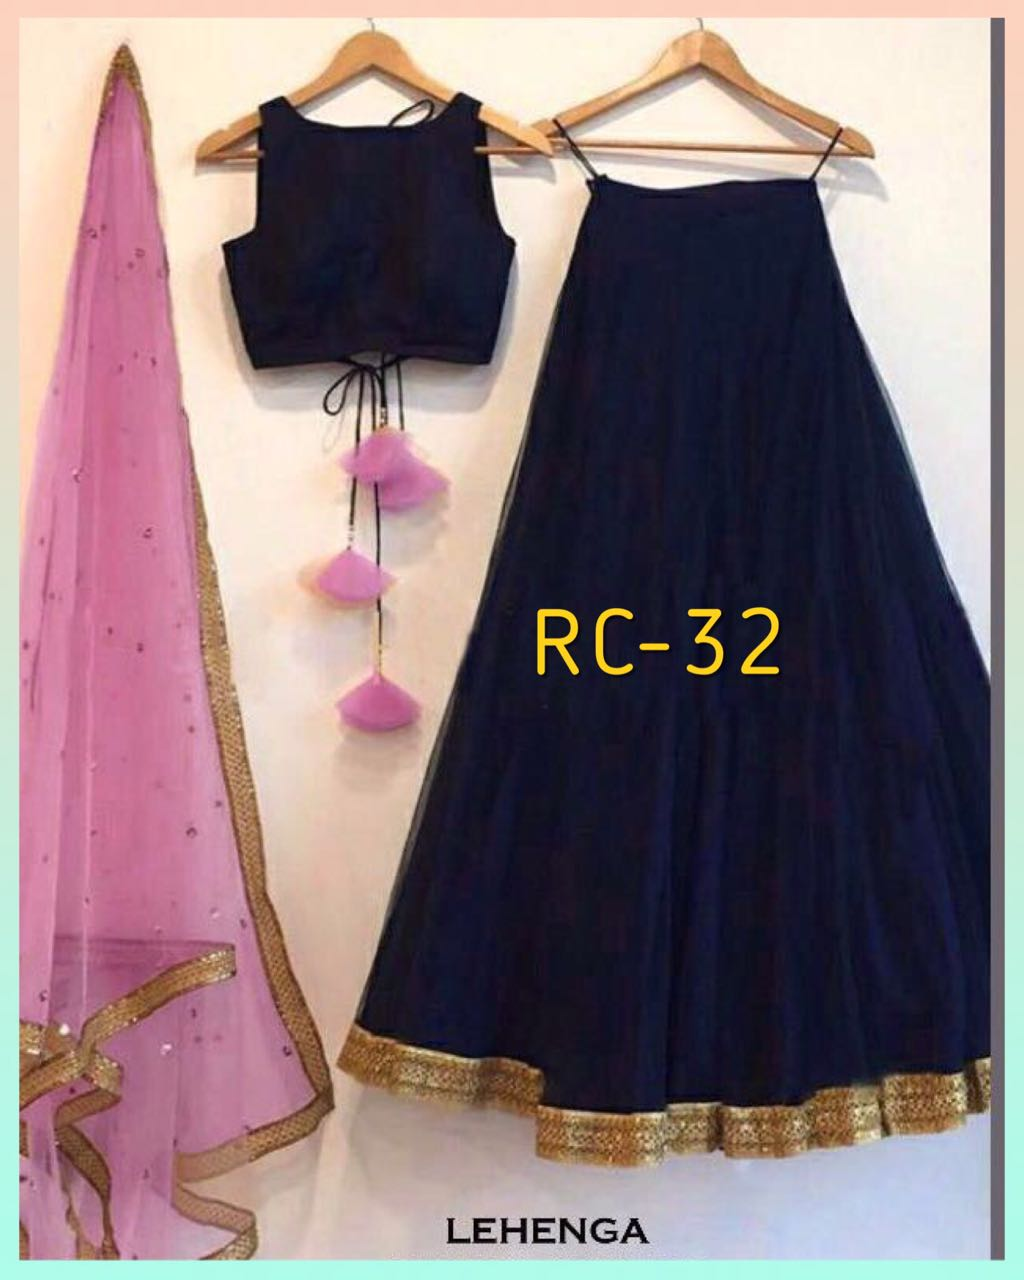 RC 32 Taffeta silk Lehenga Blouse with Pink Net Dupatta with Real Images